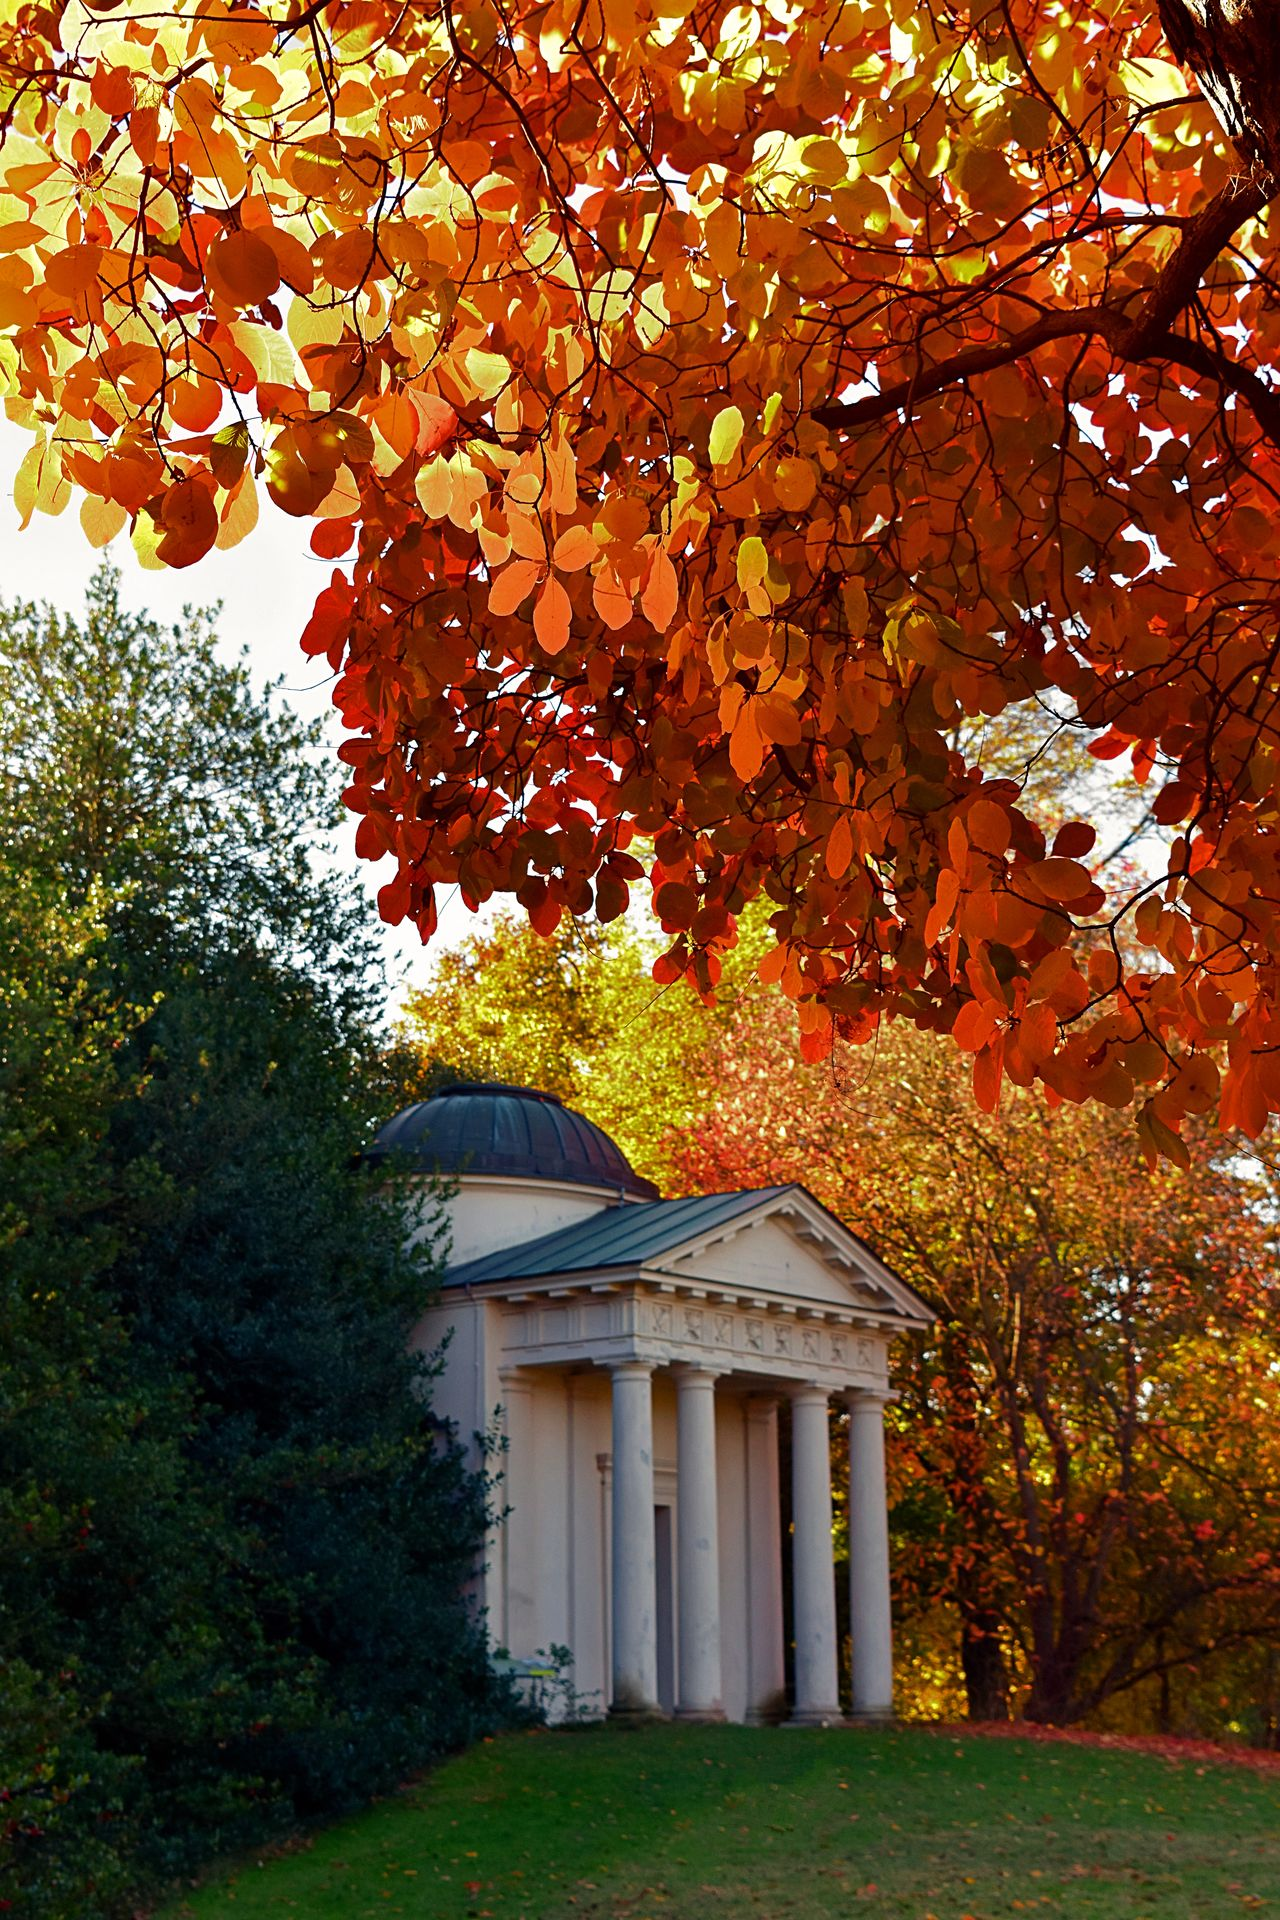 Wonderful autumn colours captured by Just Jules of i-2-i Photography. Architecture Autumn Autumn Collection Autumn Colors Autumn Leaves Autumnbeauty Kew Garden Kew Gardens Kew Gardens, London Leaf Nature Orange Color Travel Destinations Tree